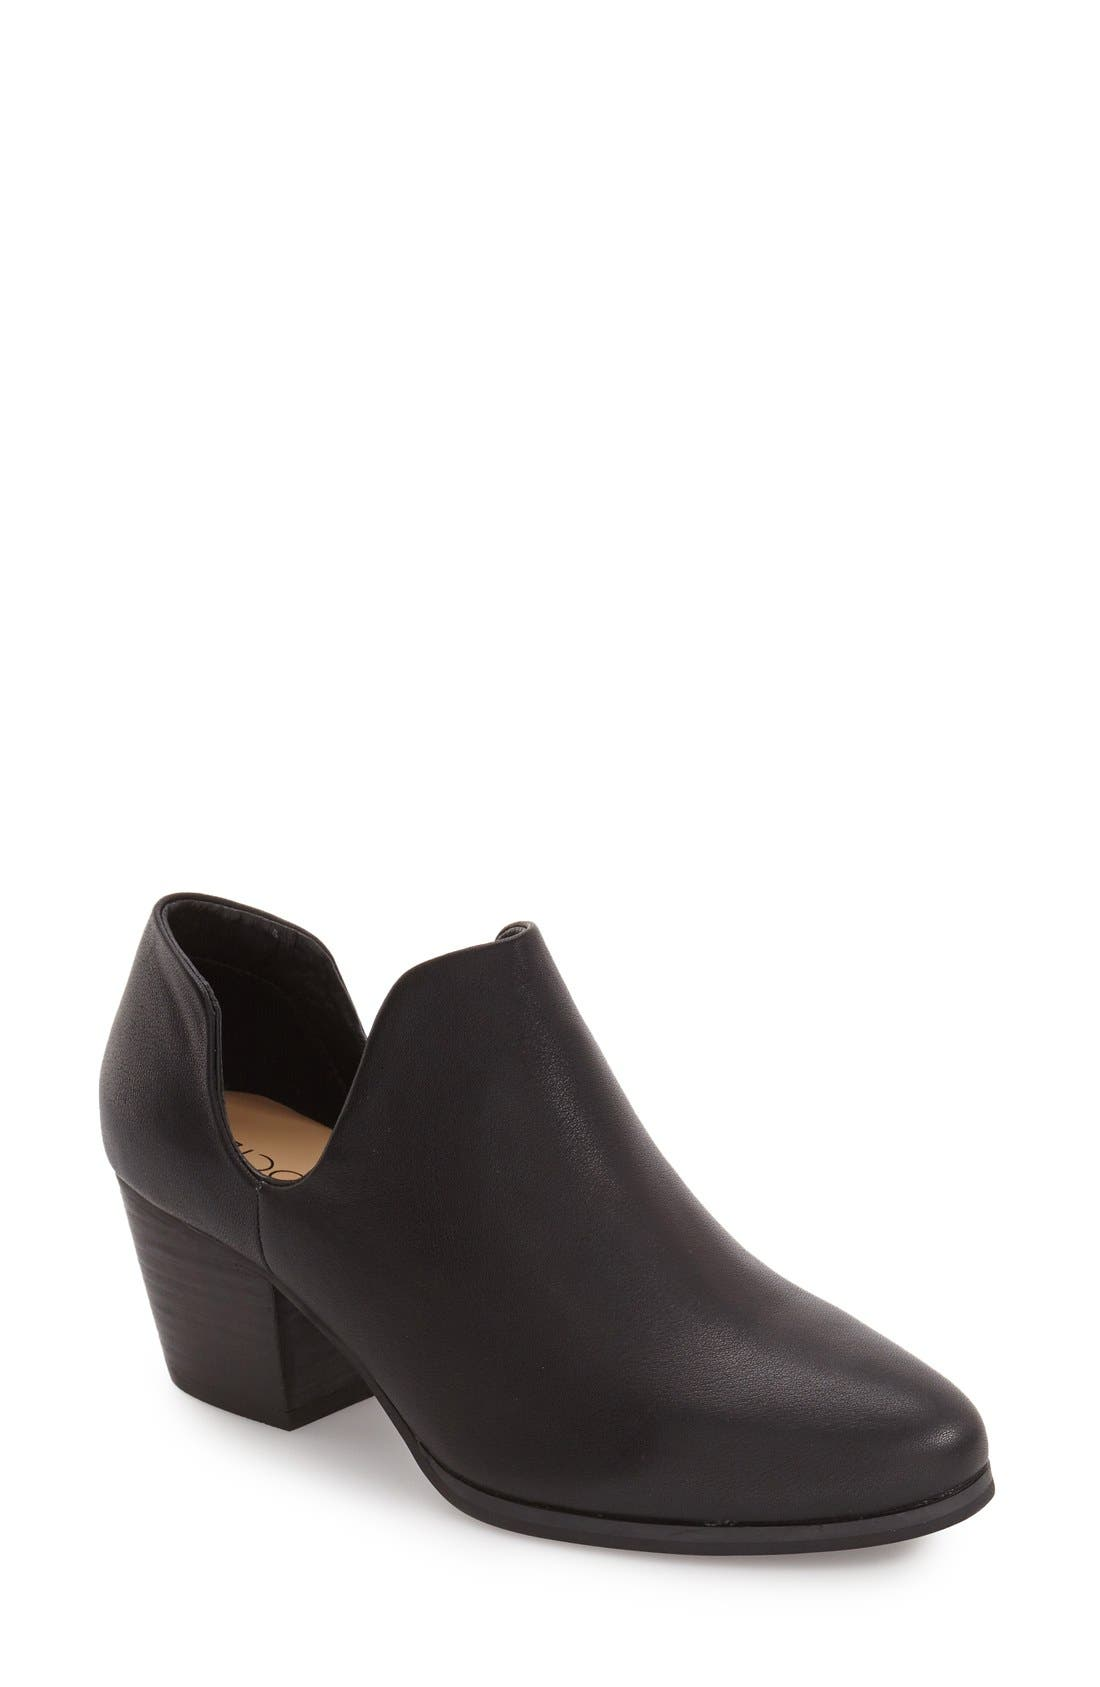 Main Image - Sole Society 'Carerra' Bootie (Women)